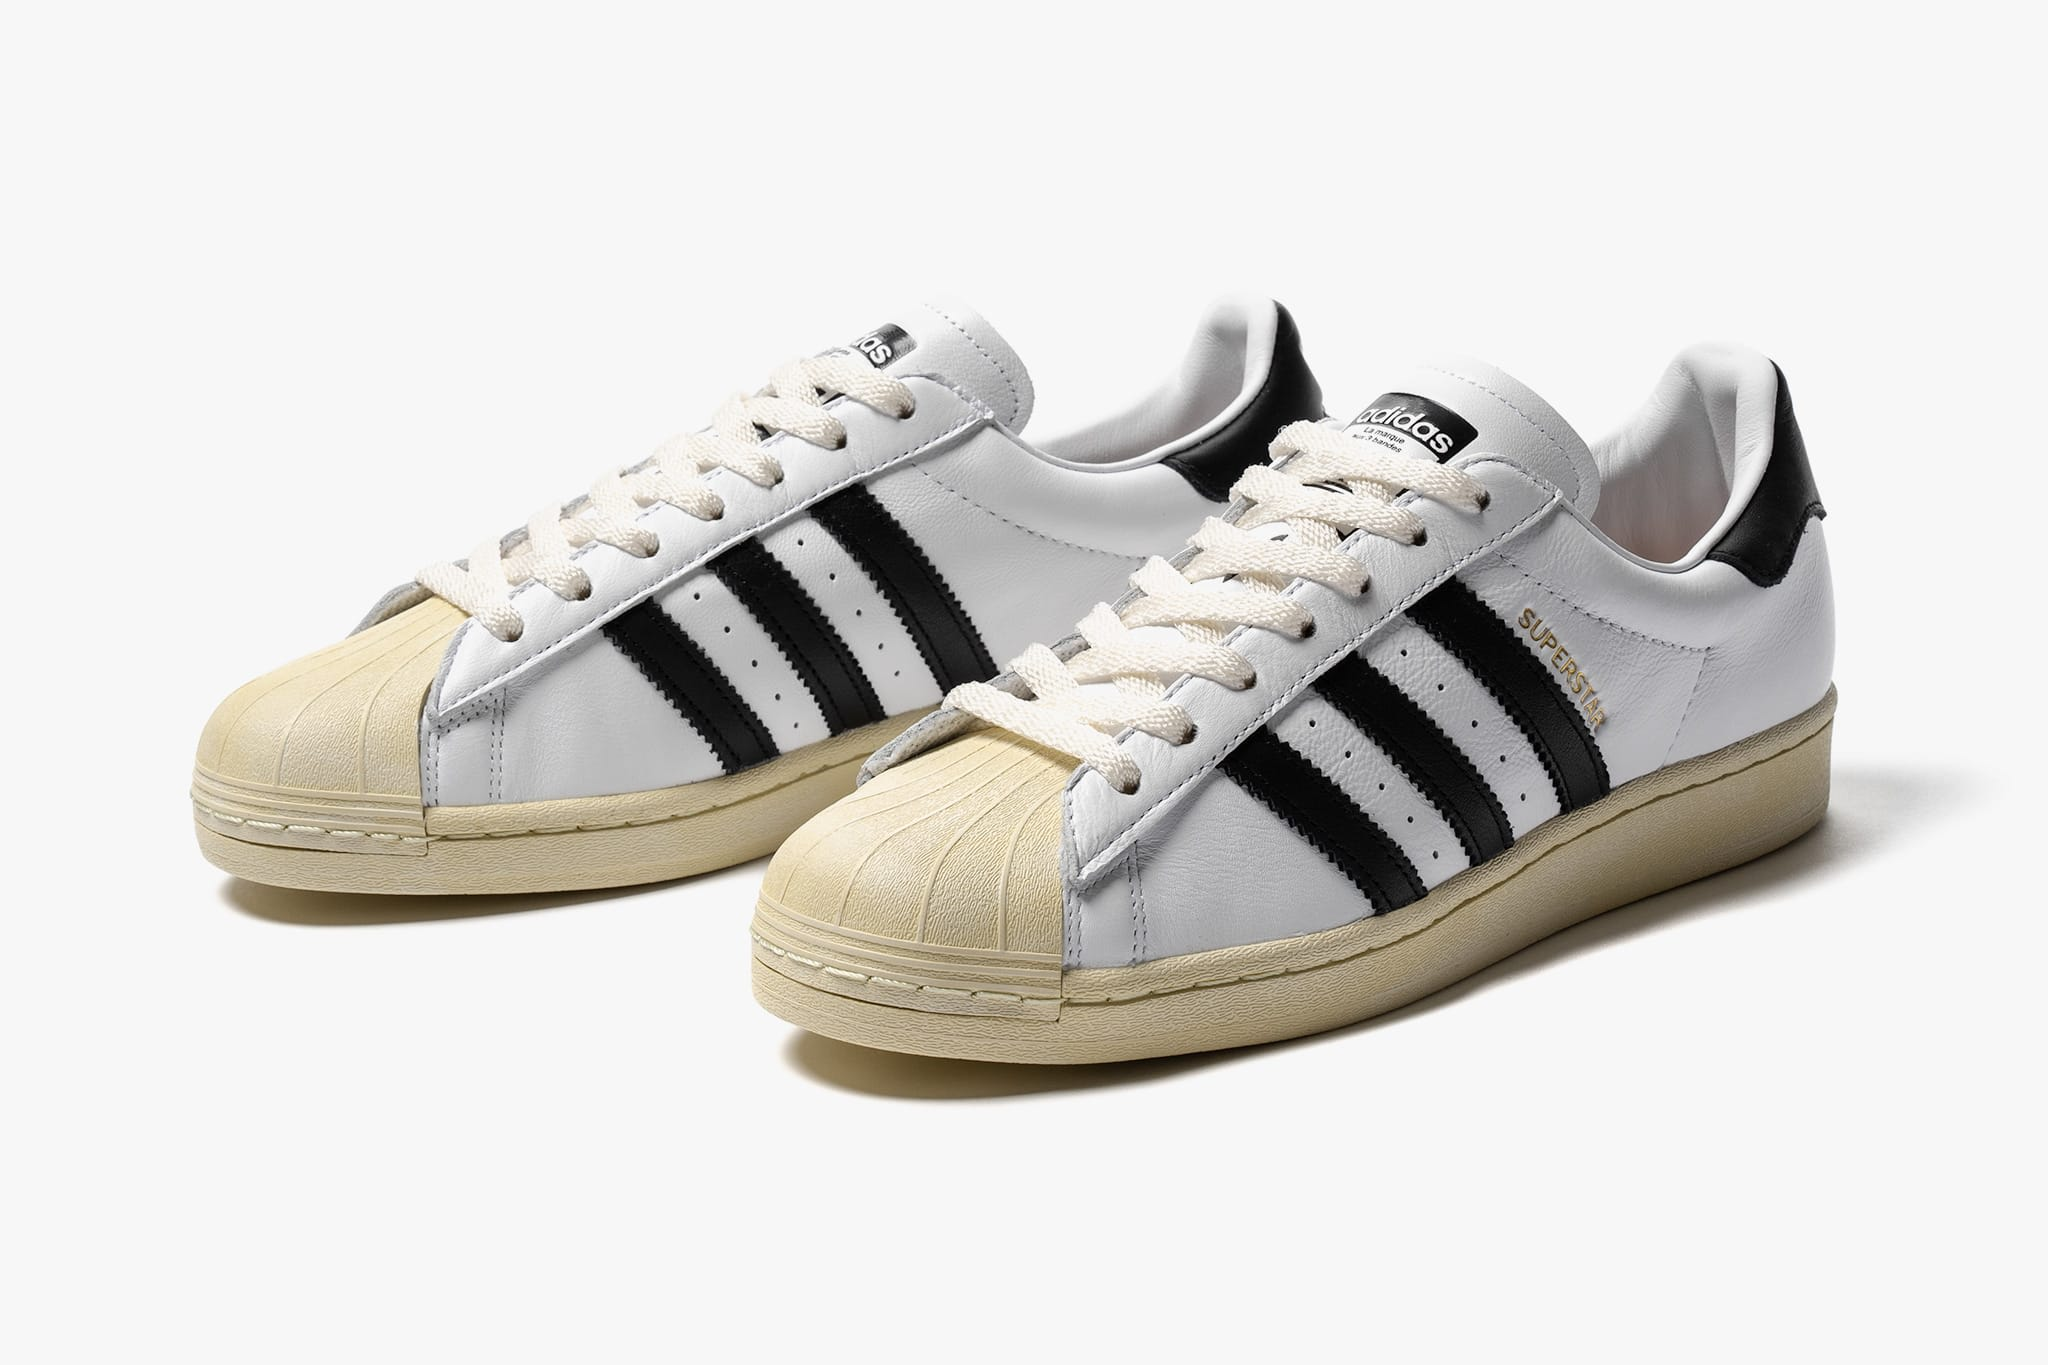 adidas Superstar White/Black   Now Available   HAVEN